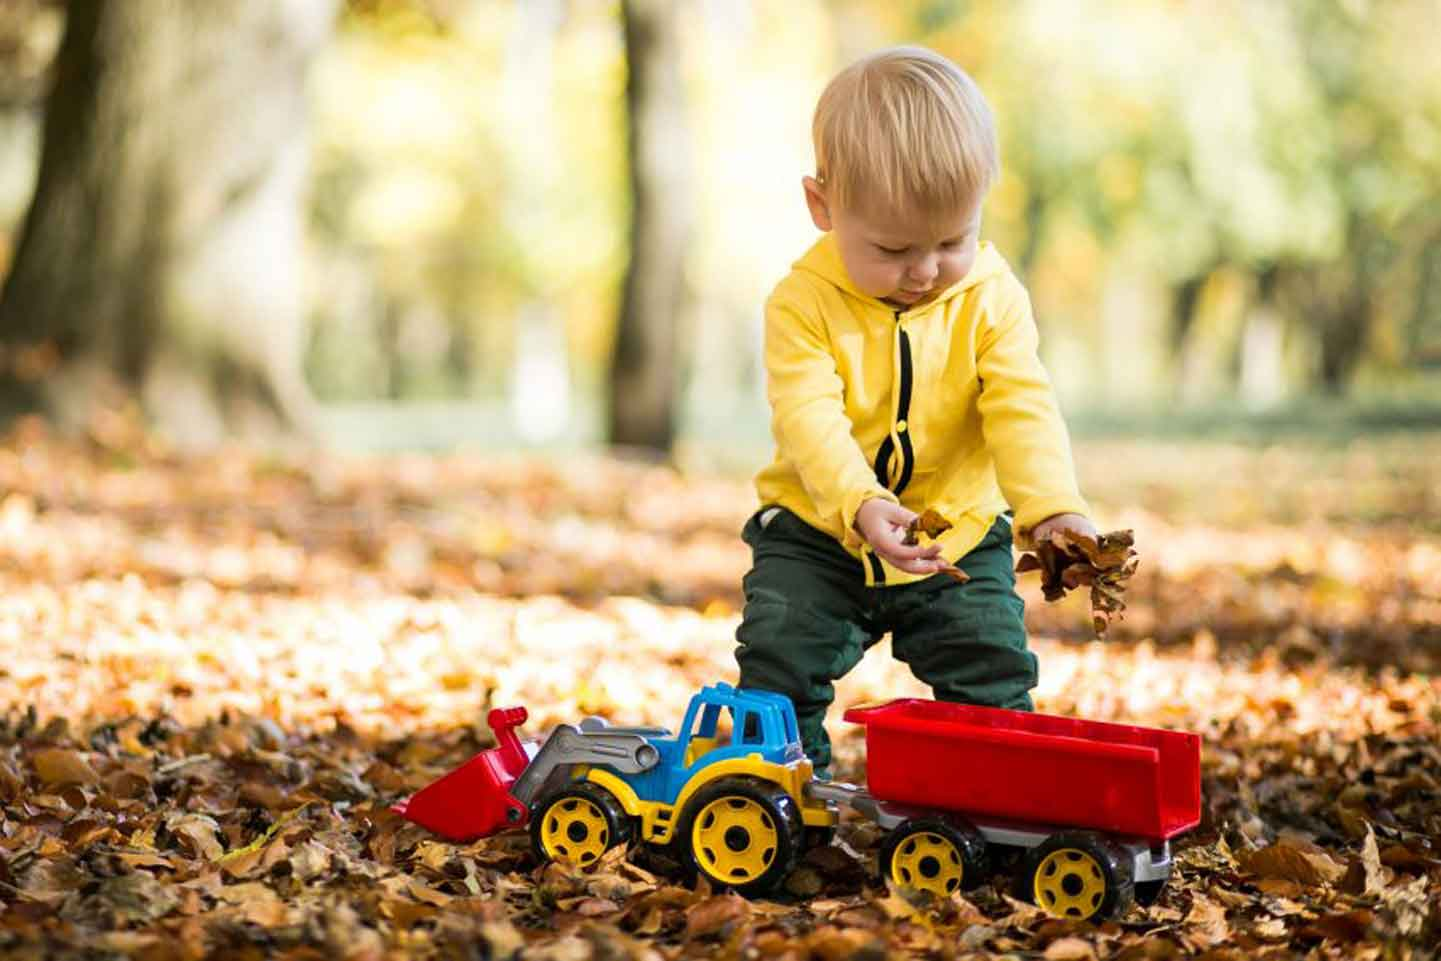 Little boy placing bark chipping in toy tractor in outdoor learning experience